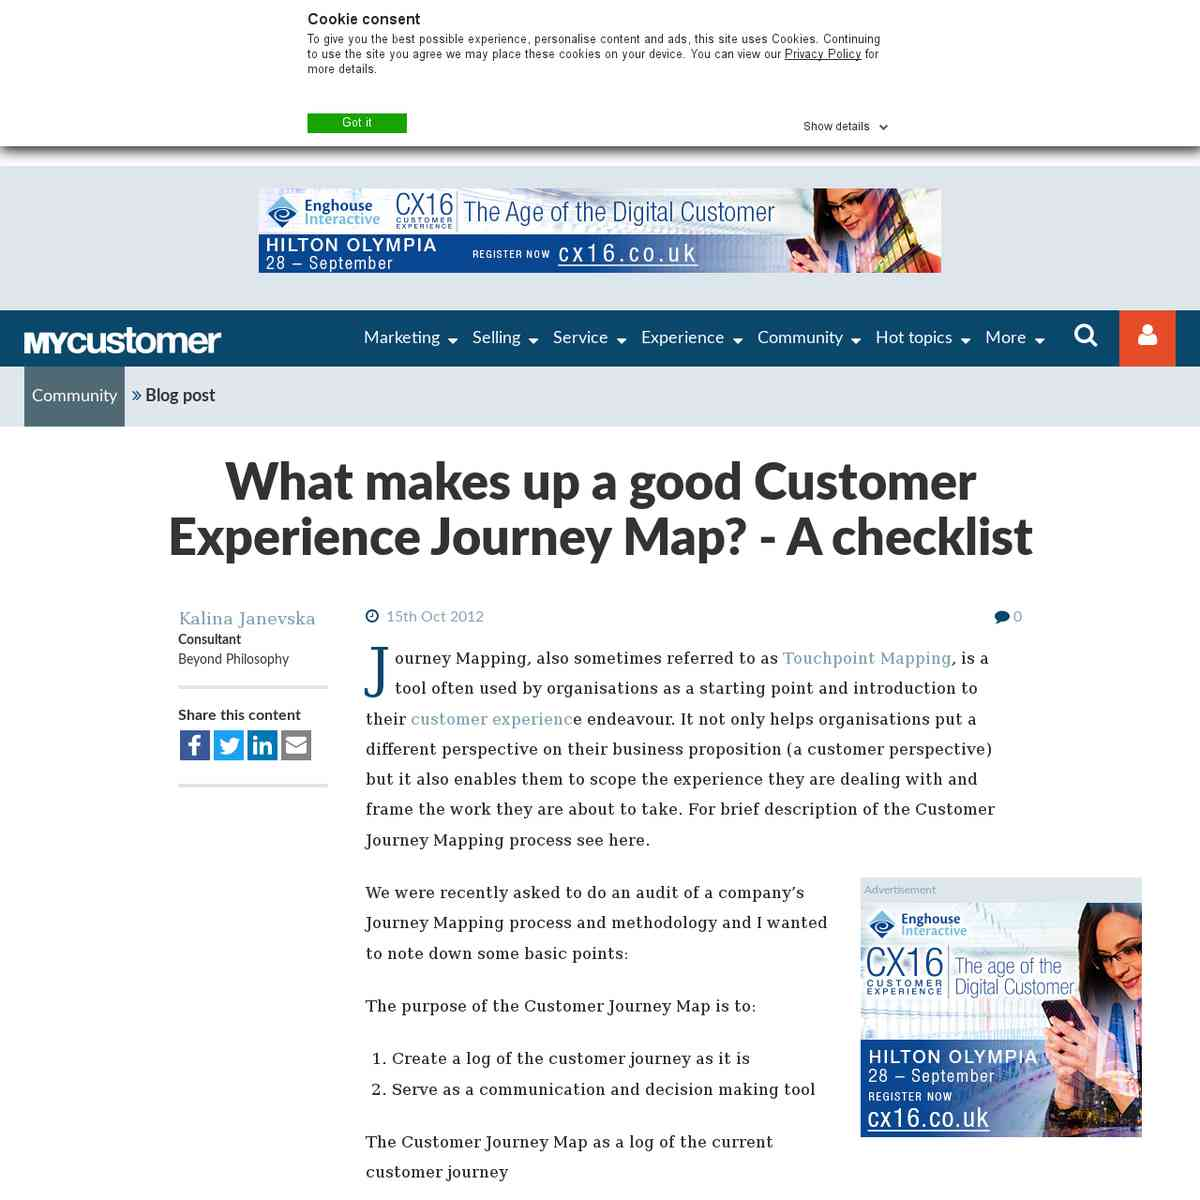 What makes up a good Customer Experience Journey Map? - A checklist